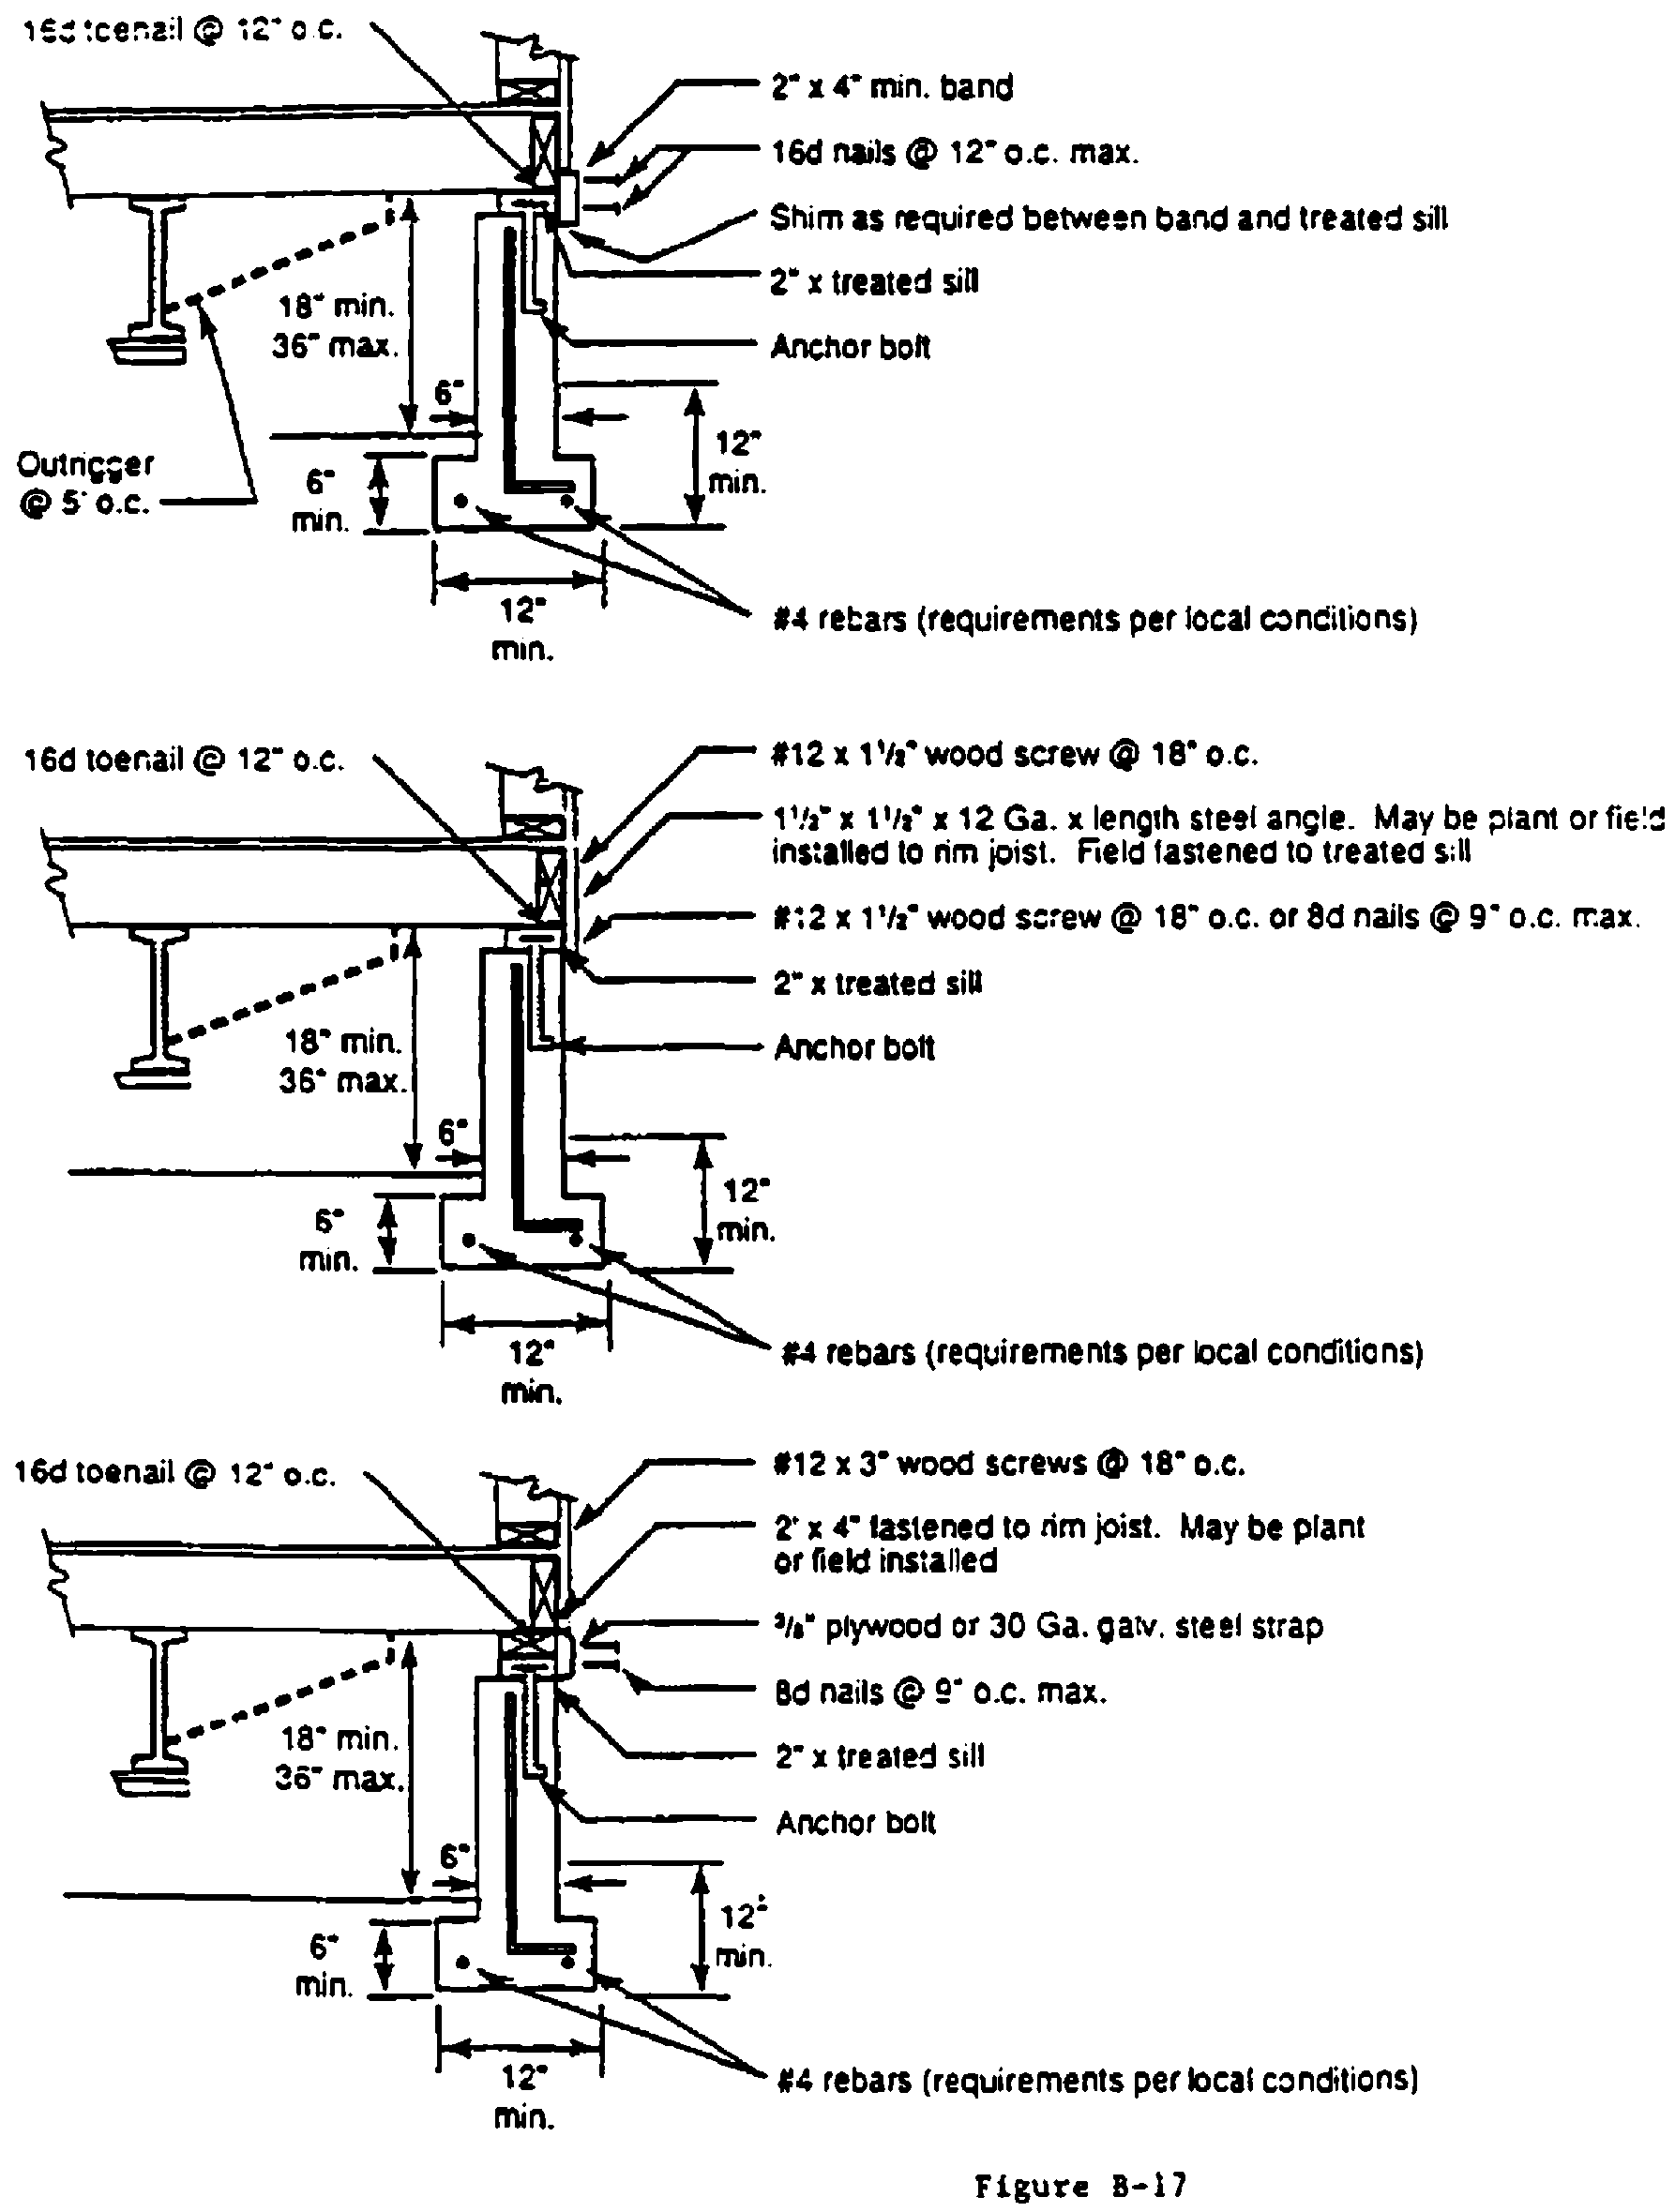 TYPICAL DESIGNS FOR LOAD-BEARING SUPPORTS FOR MANUFACTURED HOMES - Figure 15